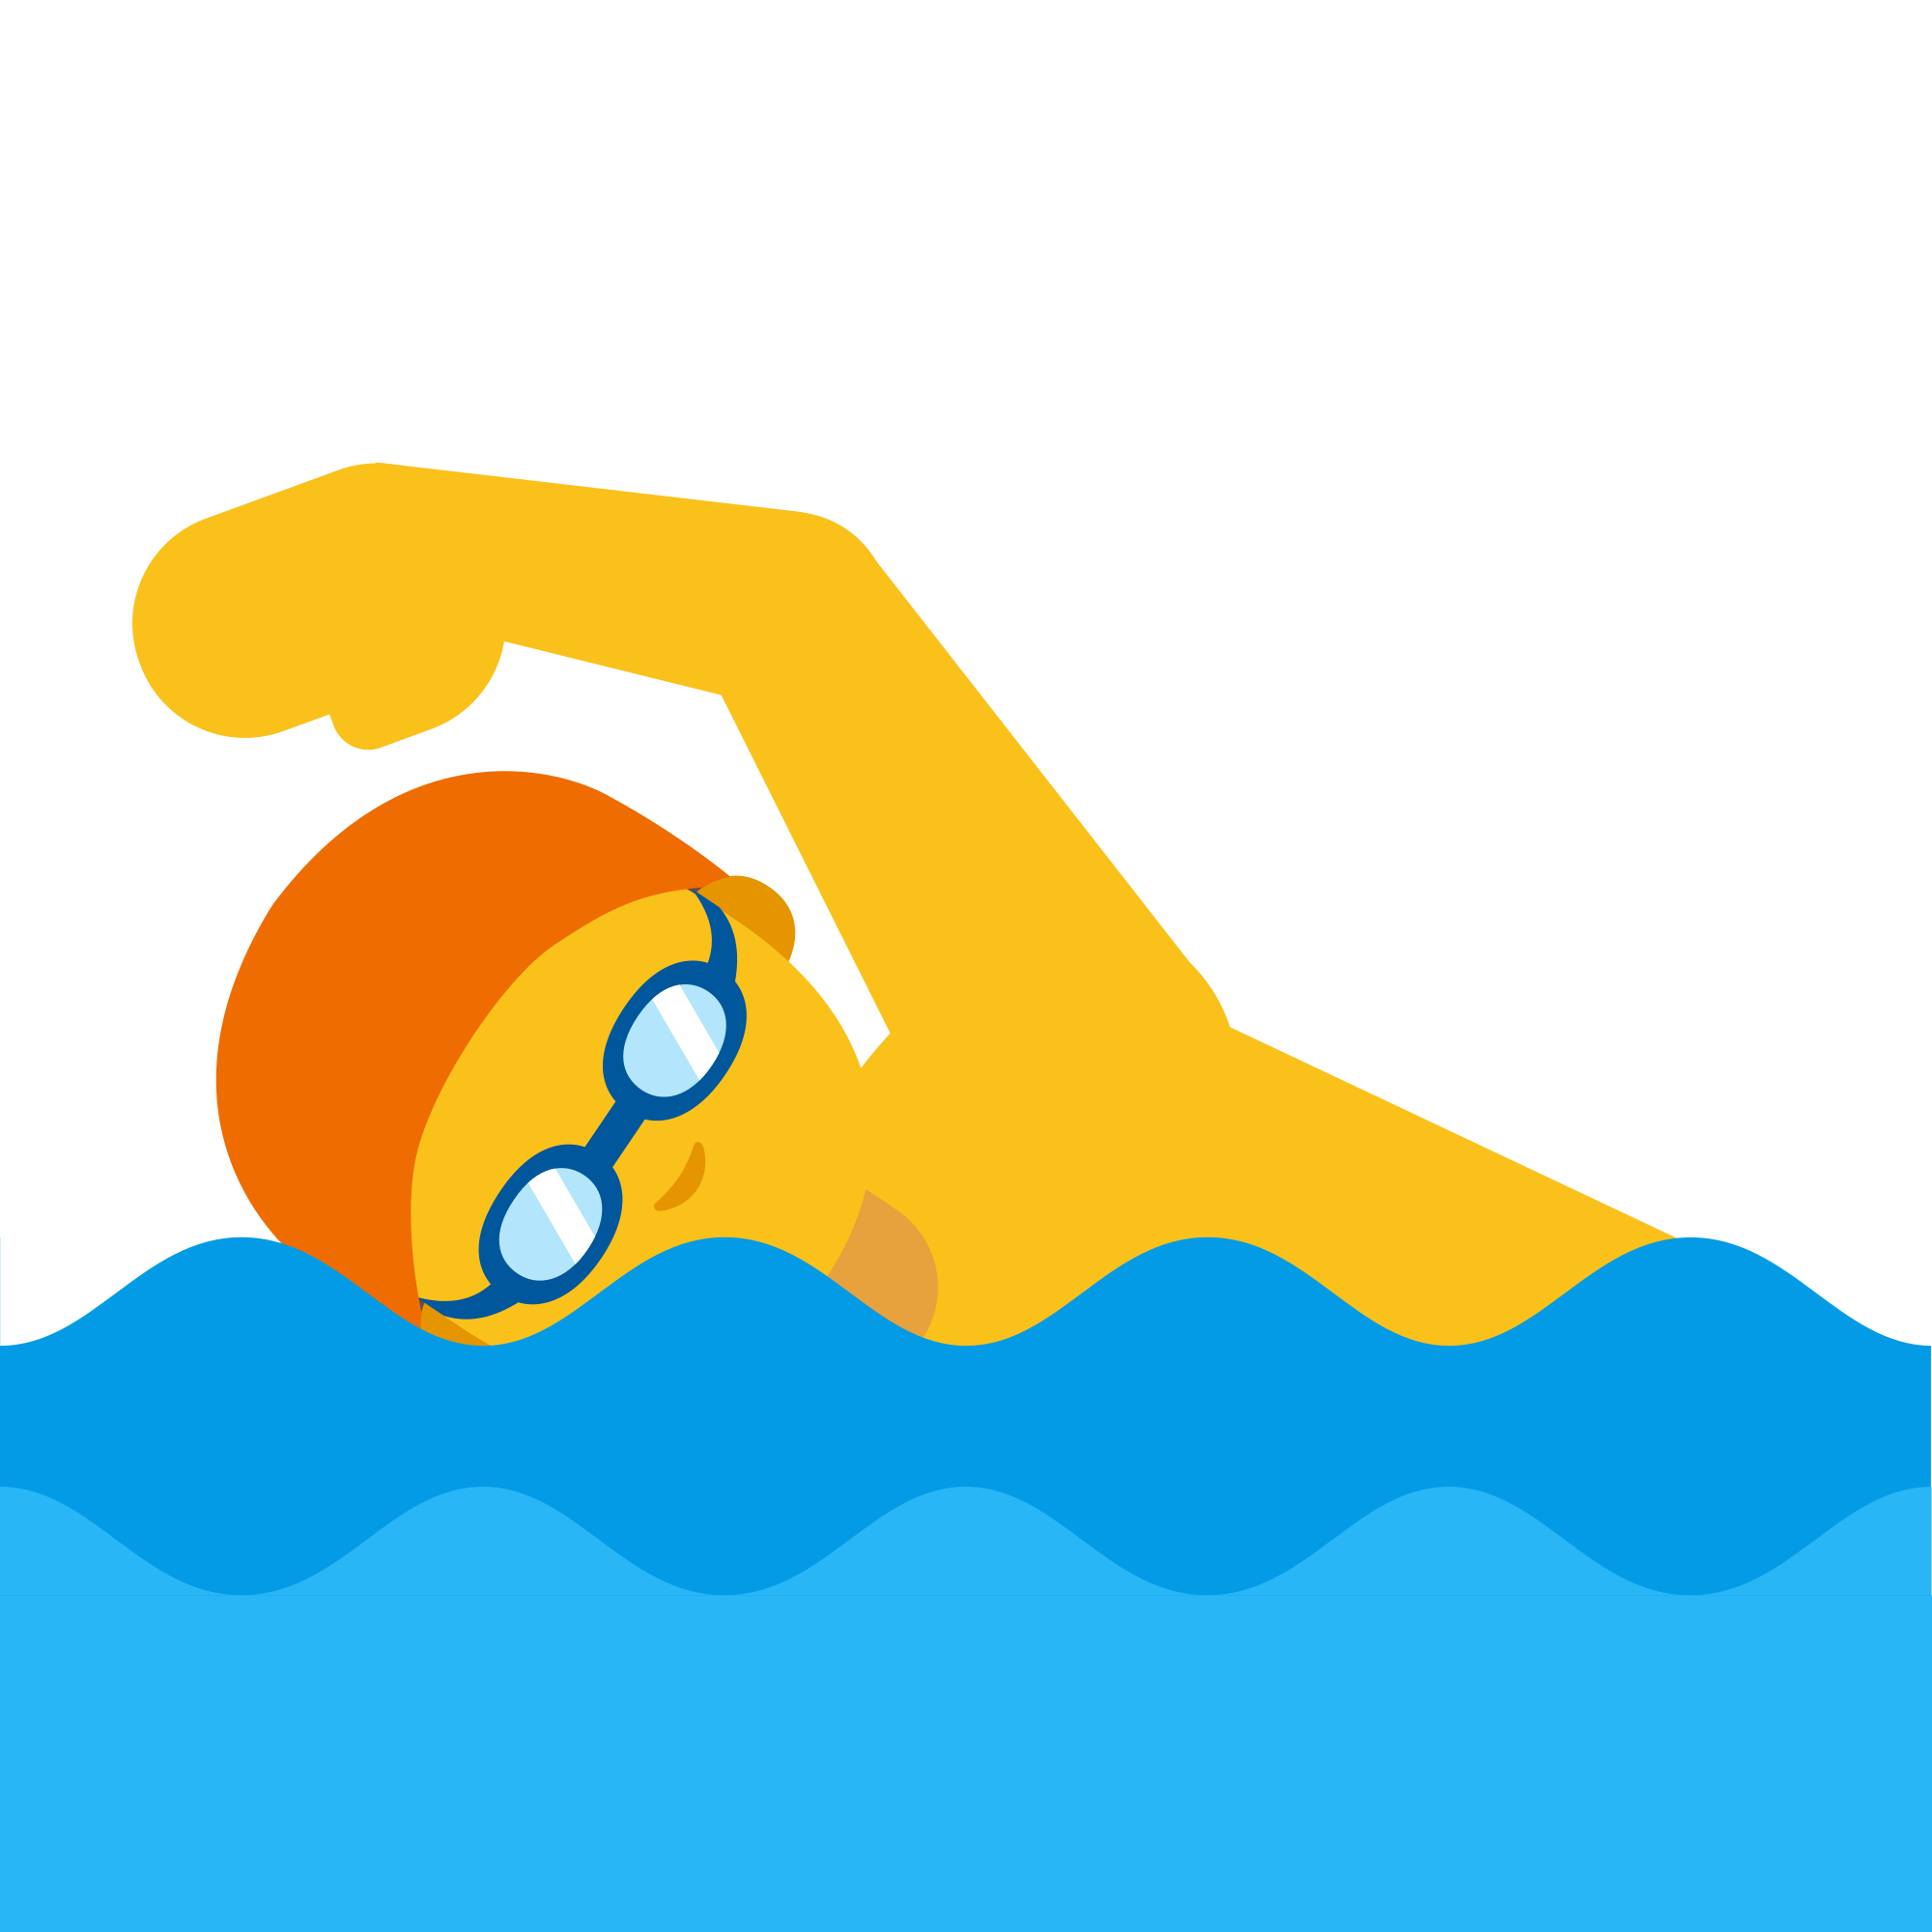 Swimming svg #5, Download drawings